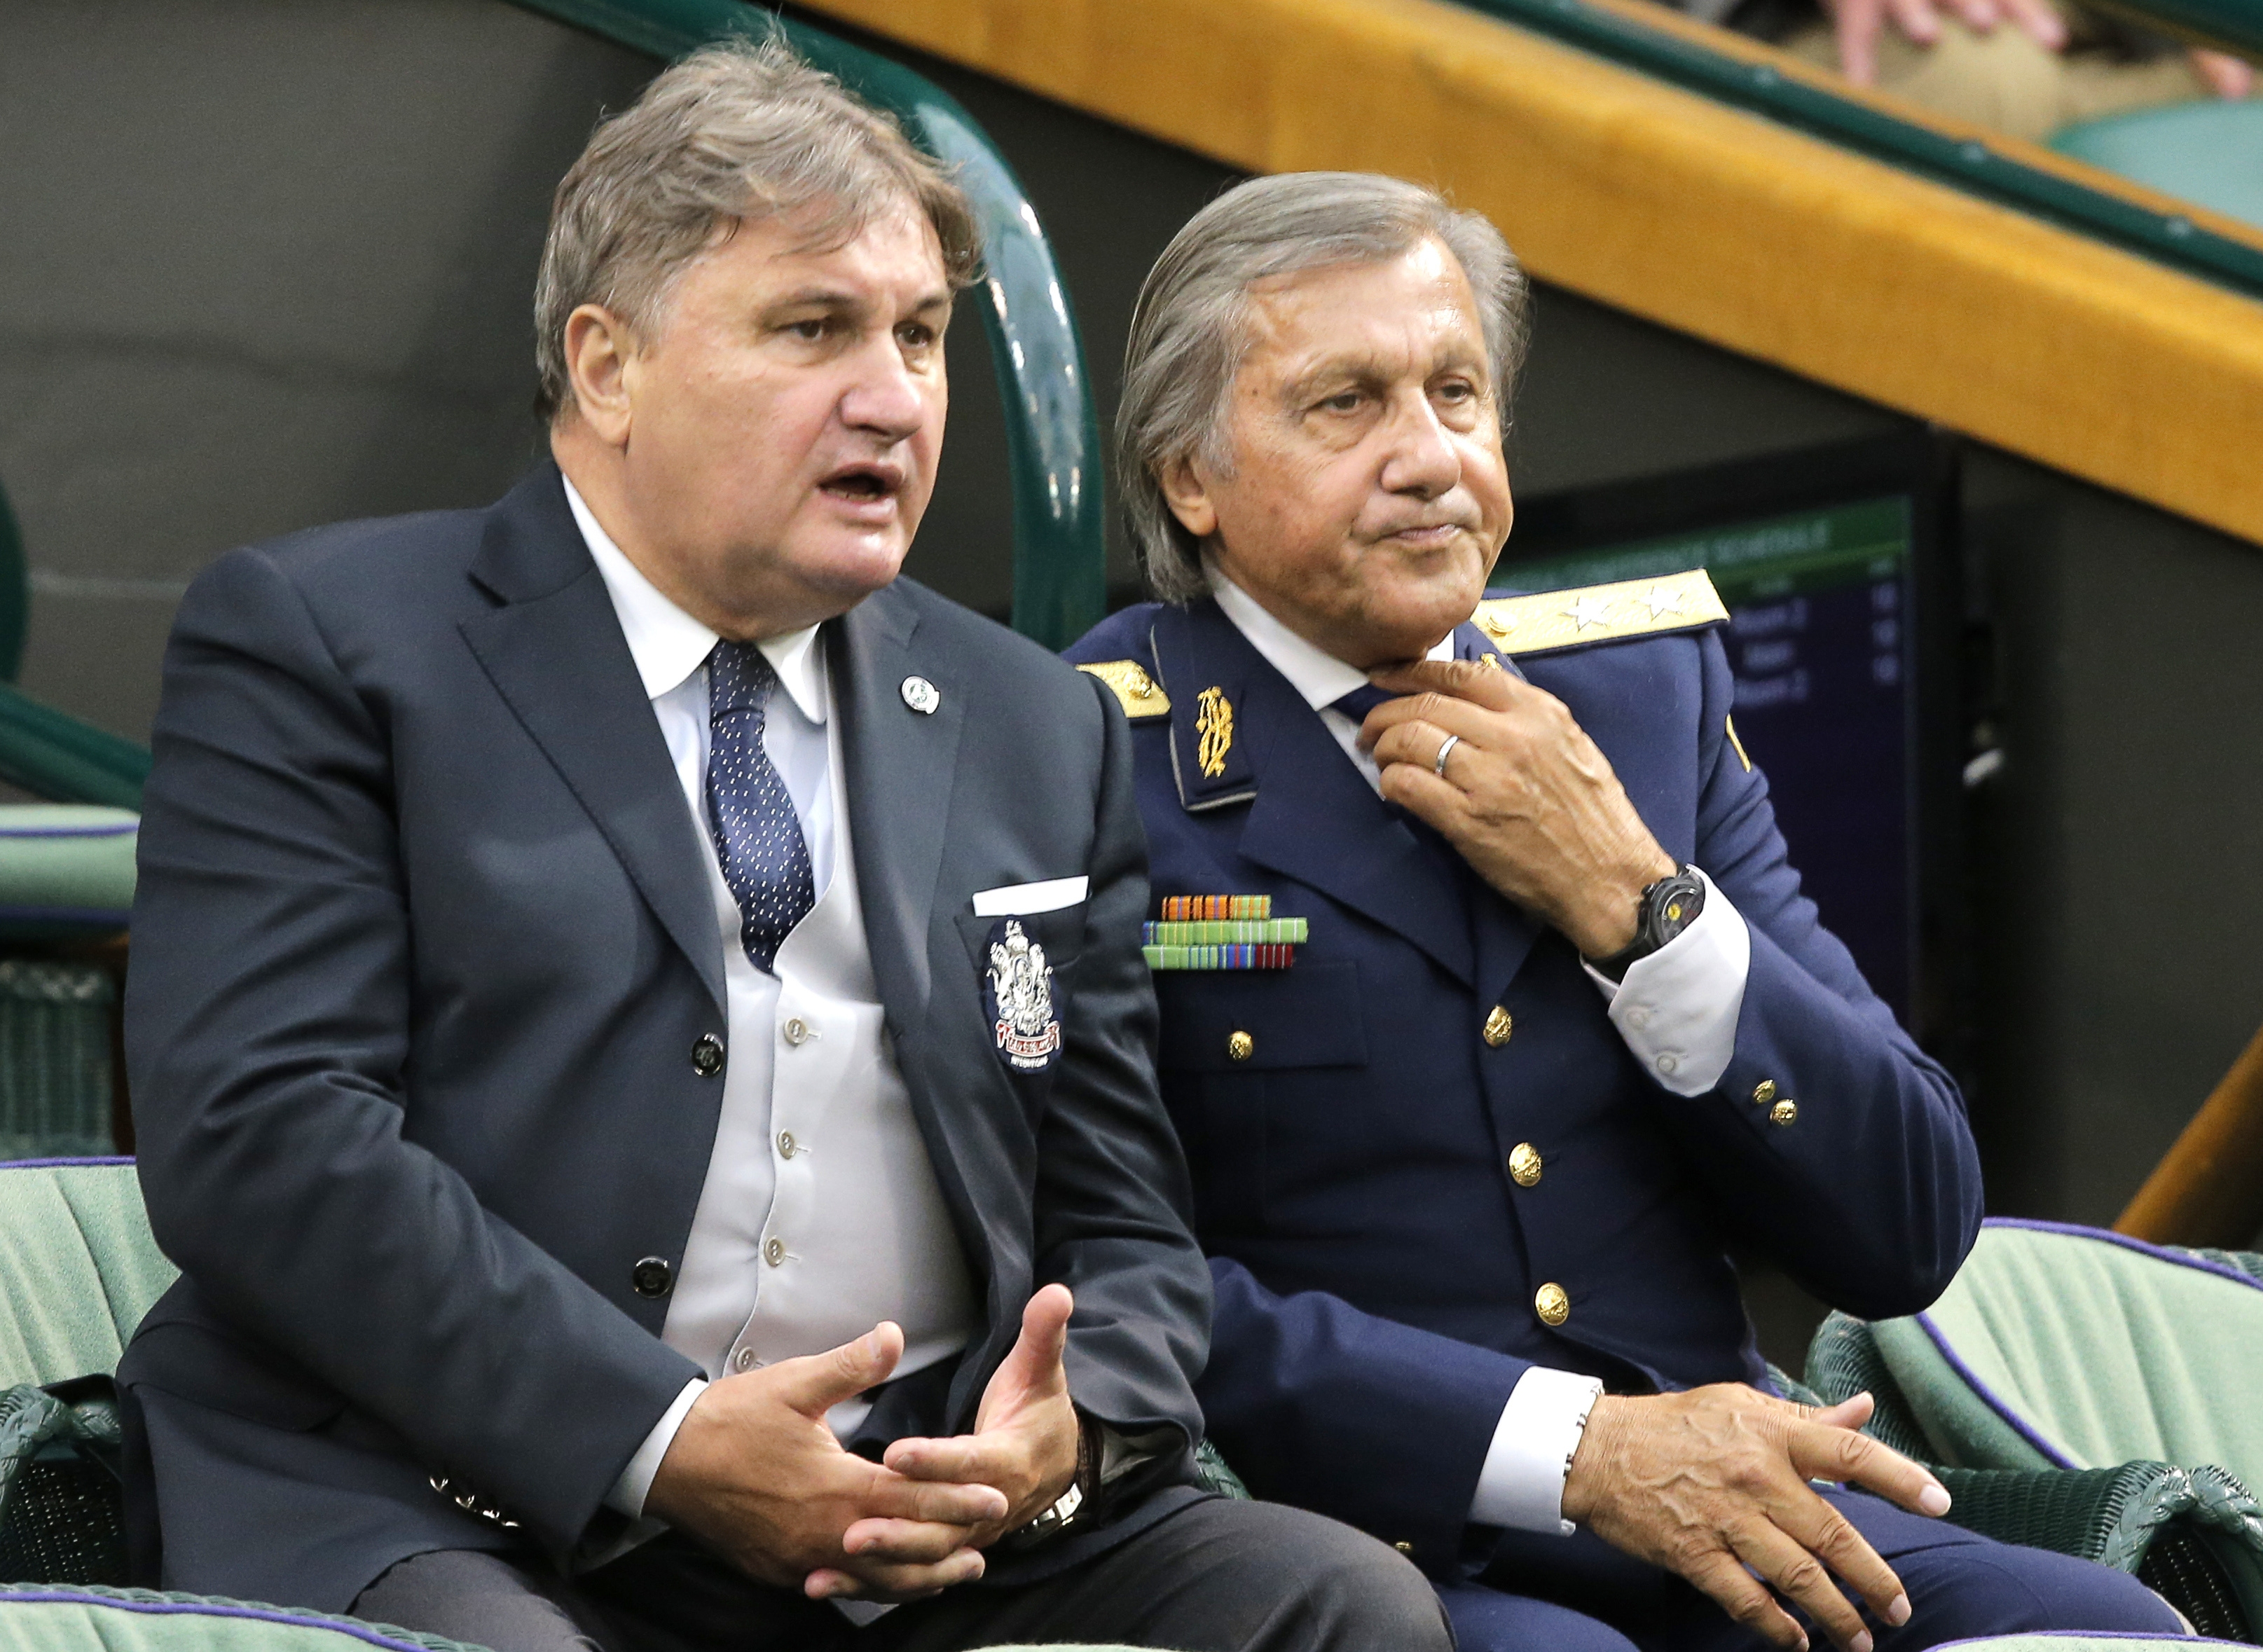 Wimbledon wear: Tennis great Ilie Nastase donned the uniform of a Romanian major general while attending the Tennis Championships in Wimbledon, England, on Monday.